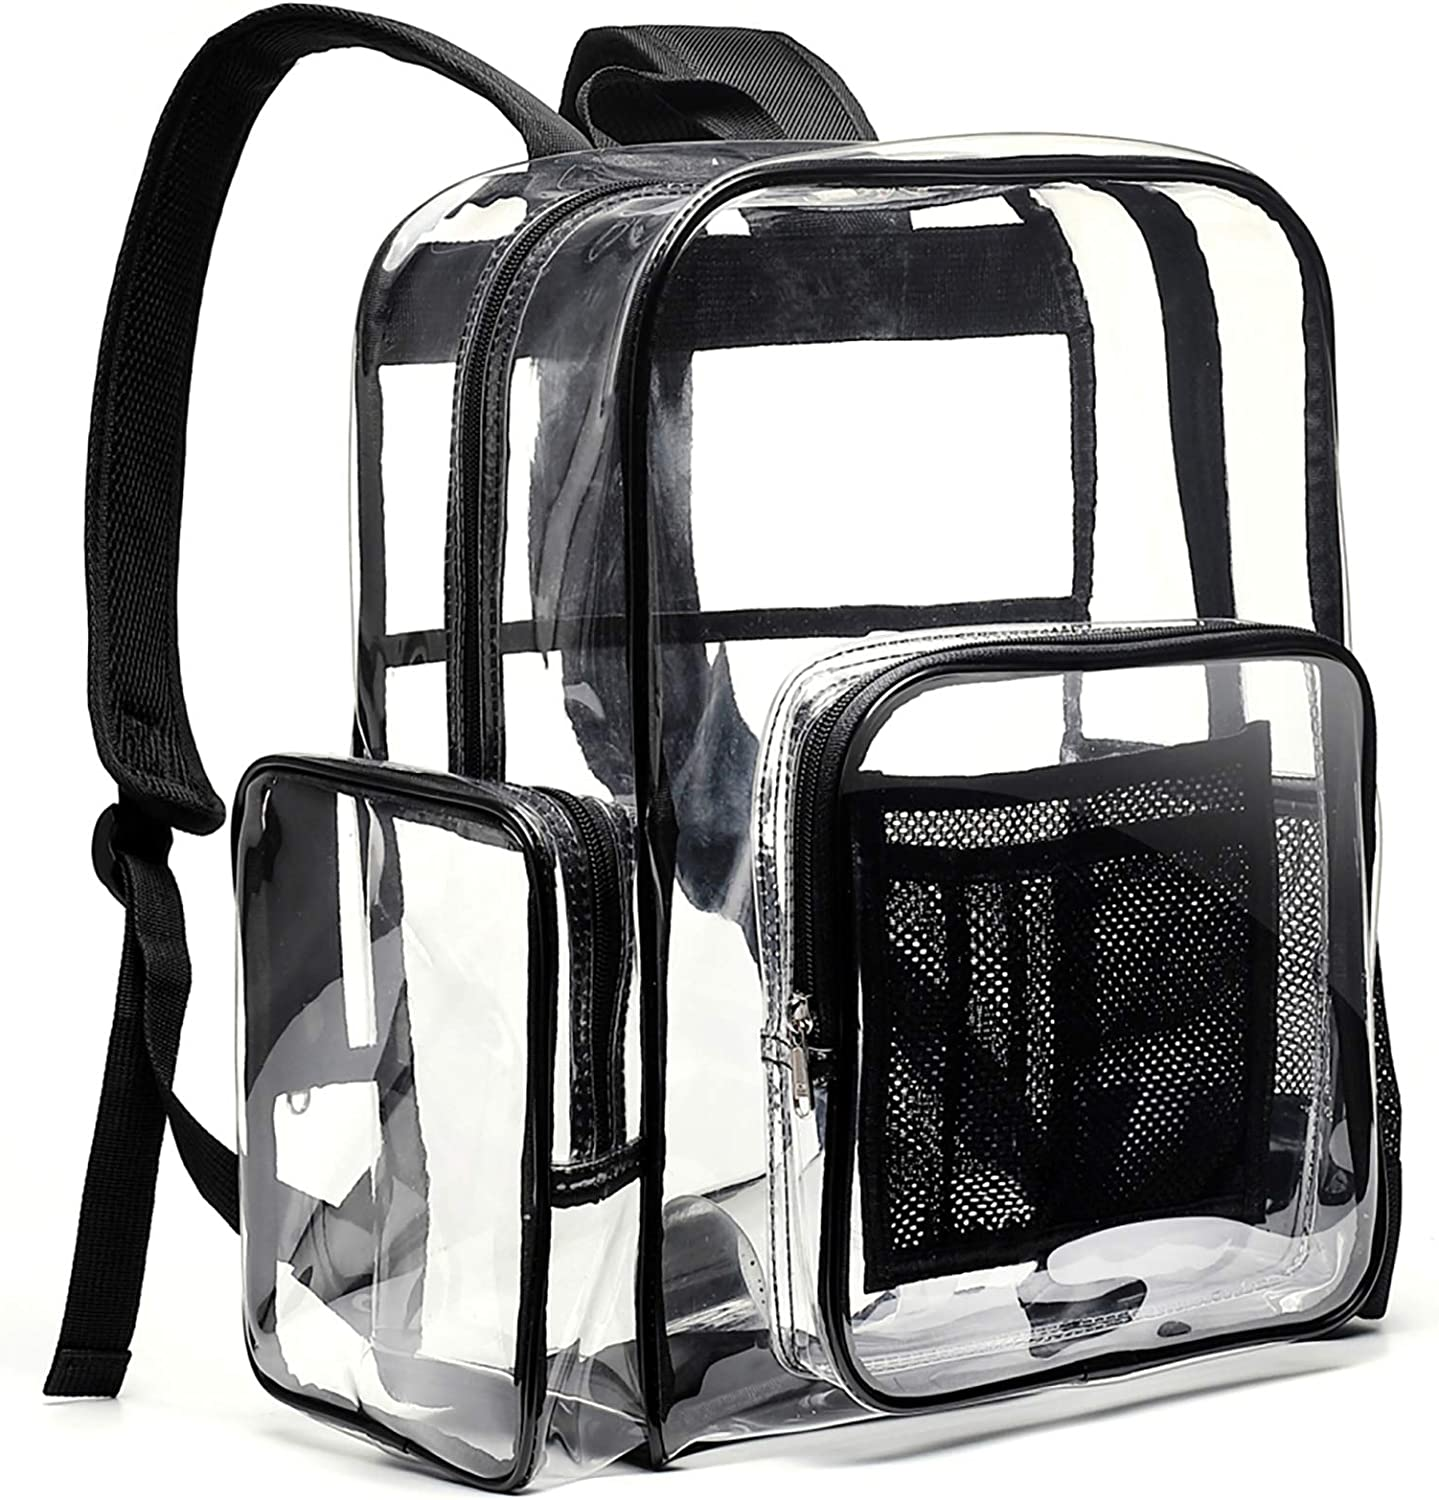 Clear Backpack, Ace Teah Heavy Duty Backpacks, Transparent Backpack for School, Black